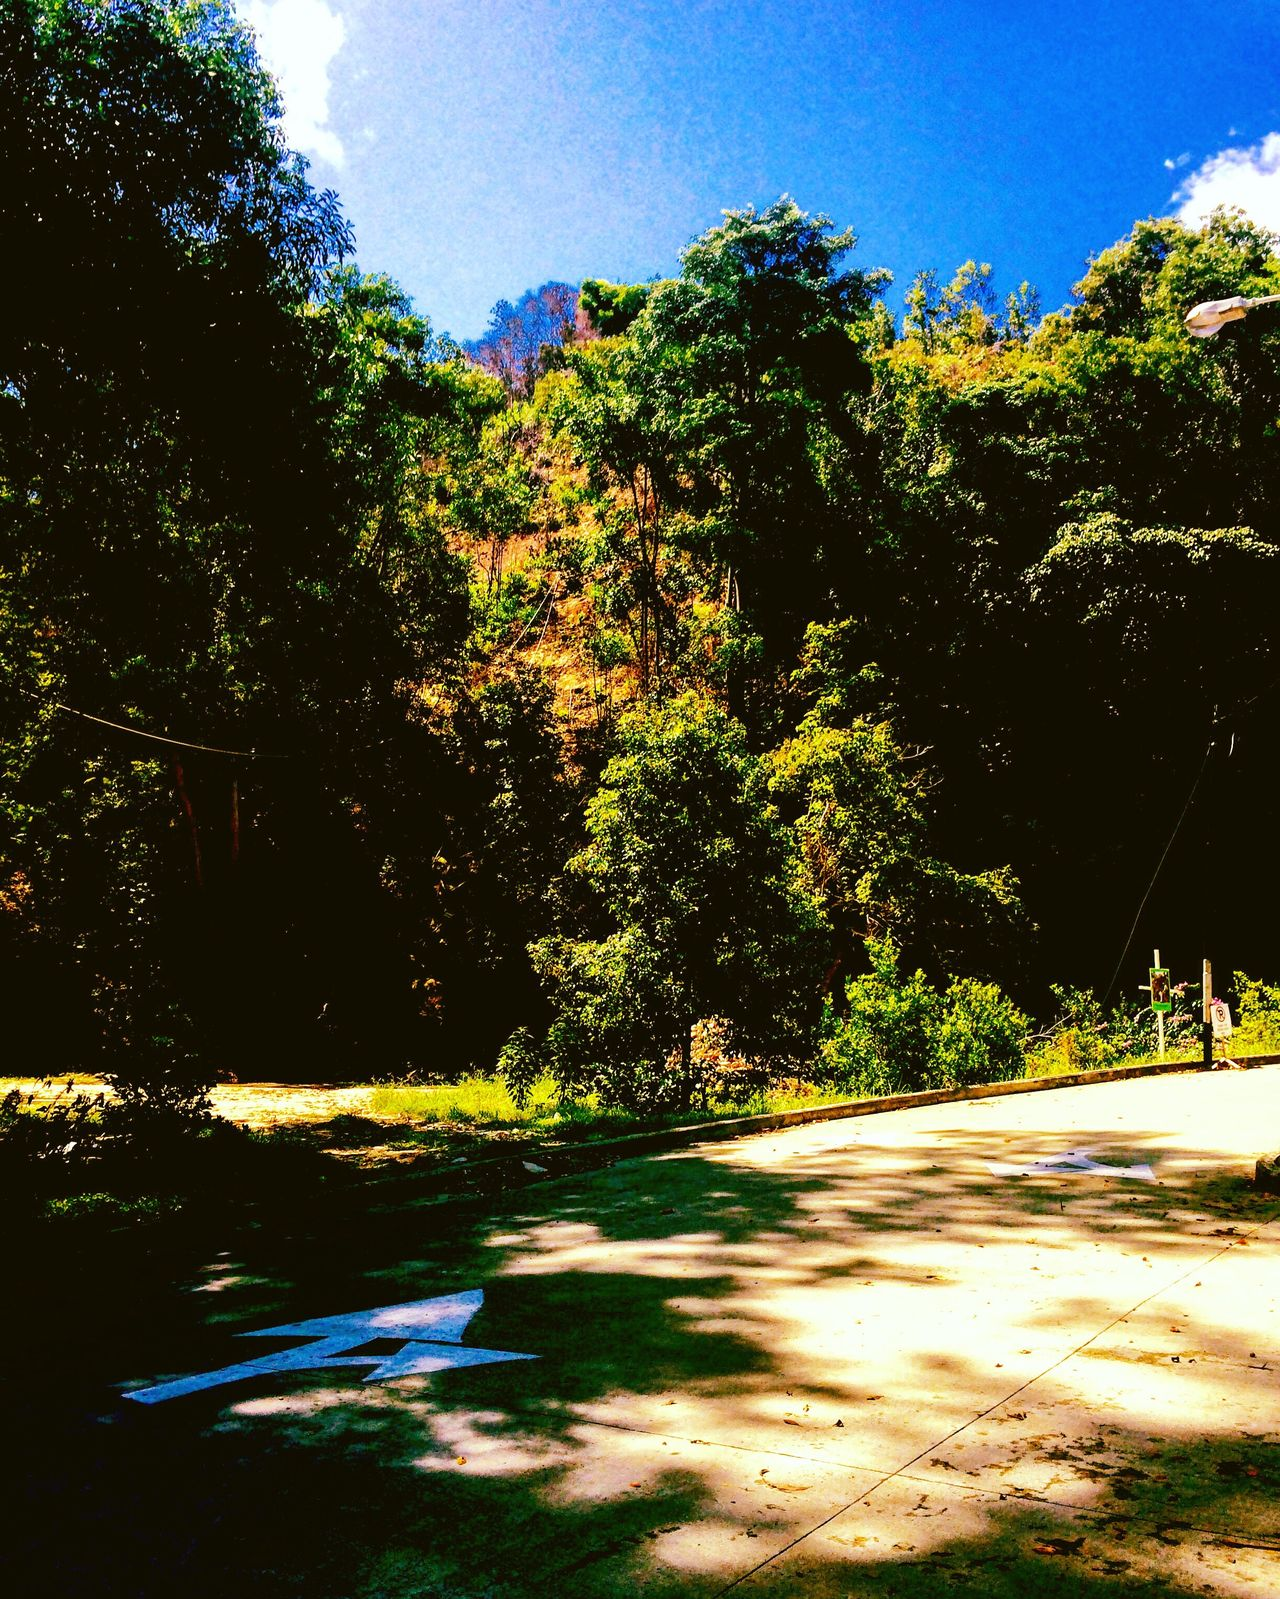 The Road Not Taken By Robert Frost Poem Nature Arrow Inspiration Motivation Travel ChoicesInLife Mernalin Amdan The Road Not Taken Two roads diverged in a yellow wood, And sorry I could not travel both And be one traveler, long I stood And looked down one as far as I could To where it bent in the undergrowth; Then took the other, as just as fair And having perhaps the better claim, Because it was grassy and wanted wear; Though as for that the passing there Had worn them really about the same, And both that morning equally lay In leaves no step had trodden black. Oh, I kept the first for another day! Yet knowing how way leads on to way, I doubted if I should ever come back. I shall be telling this with a sigh Somewhere ages and ages hence: Two roads diverged in a wood, and I — I took the one less traveled by, And that has made all the difference.